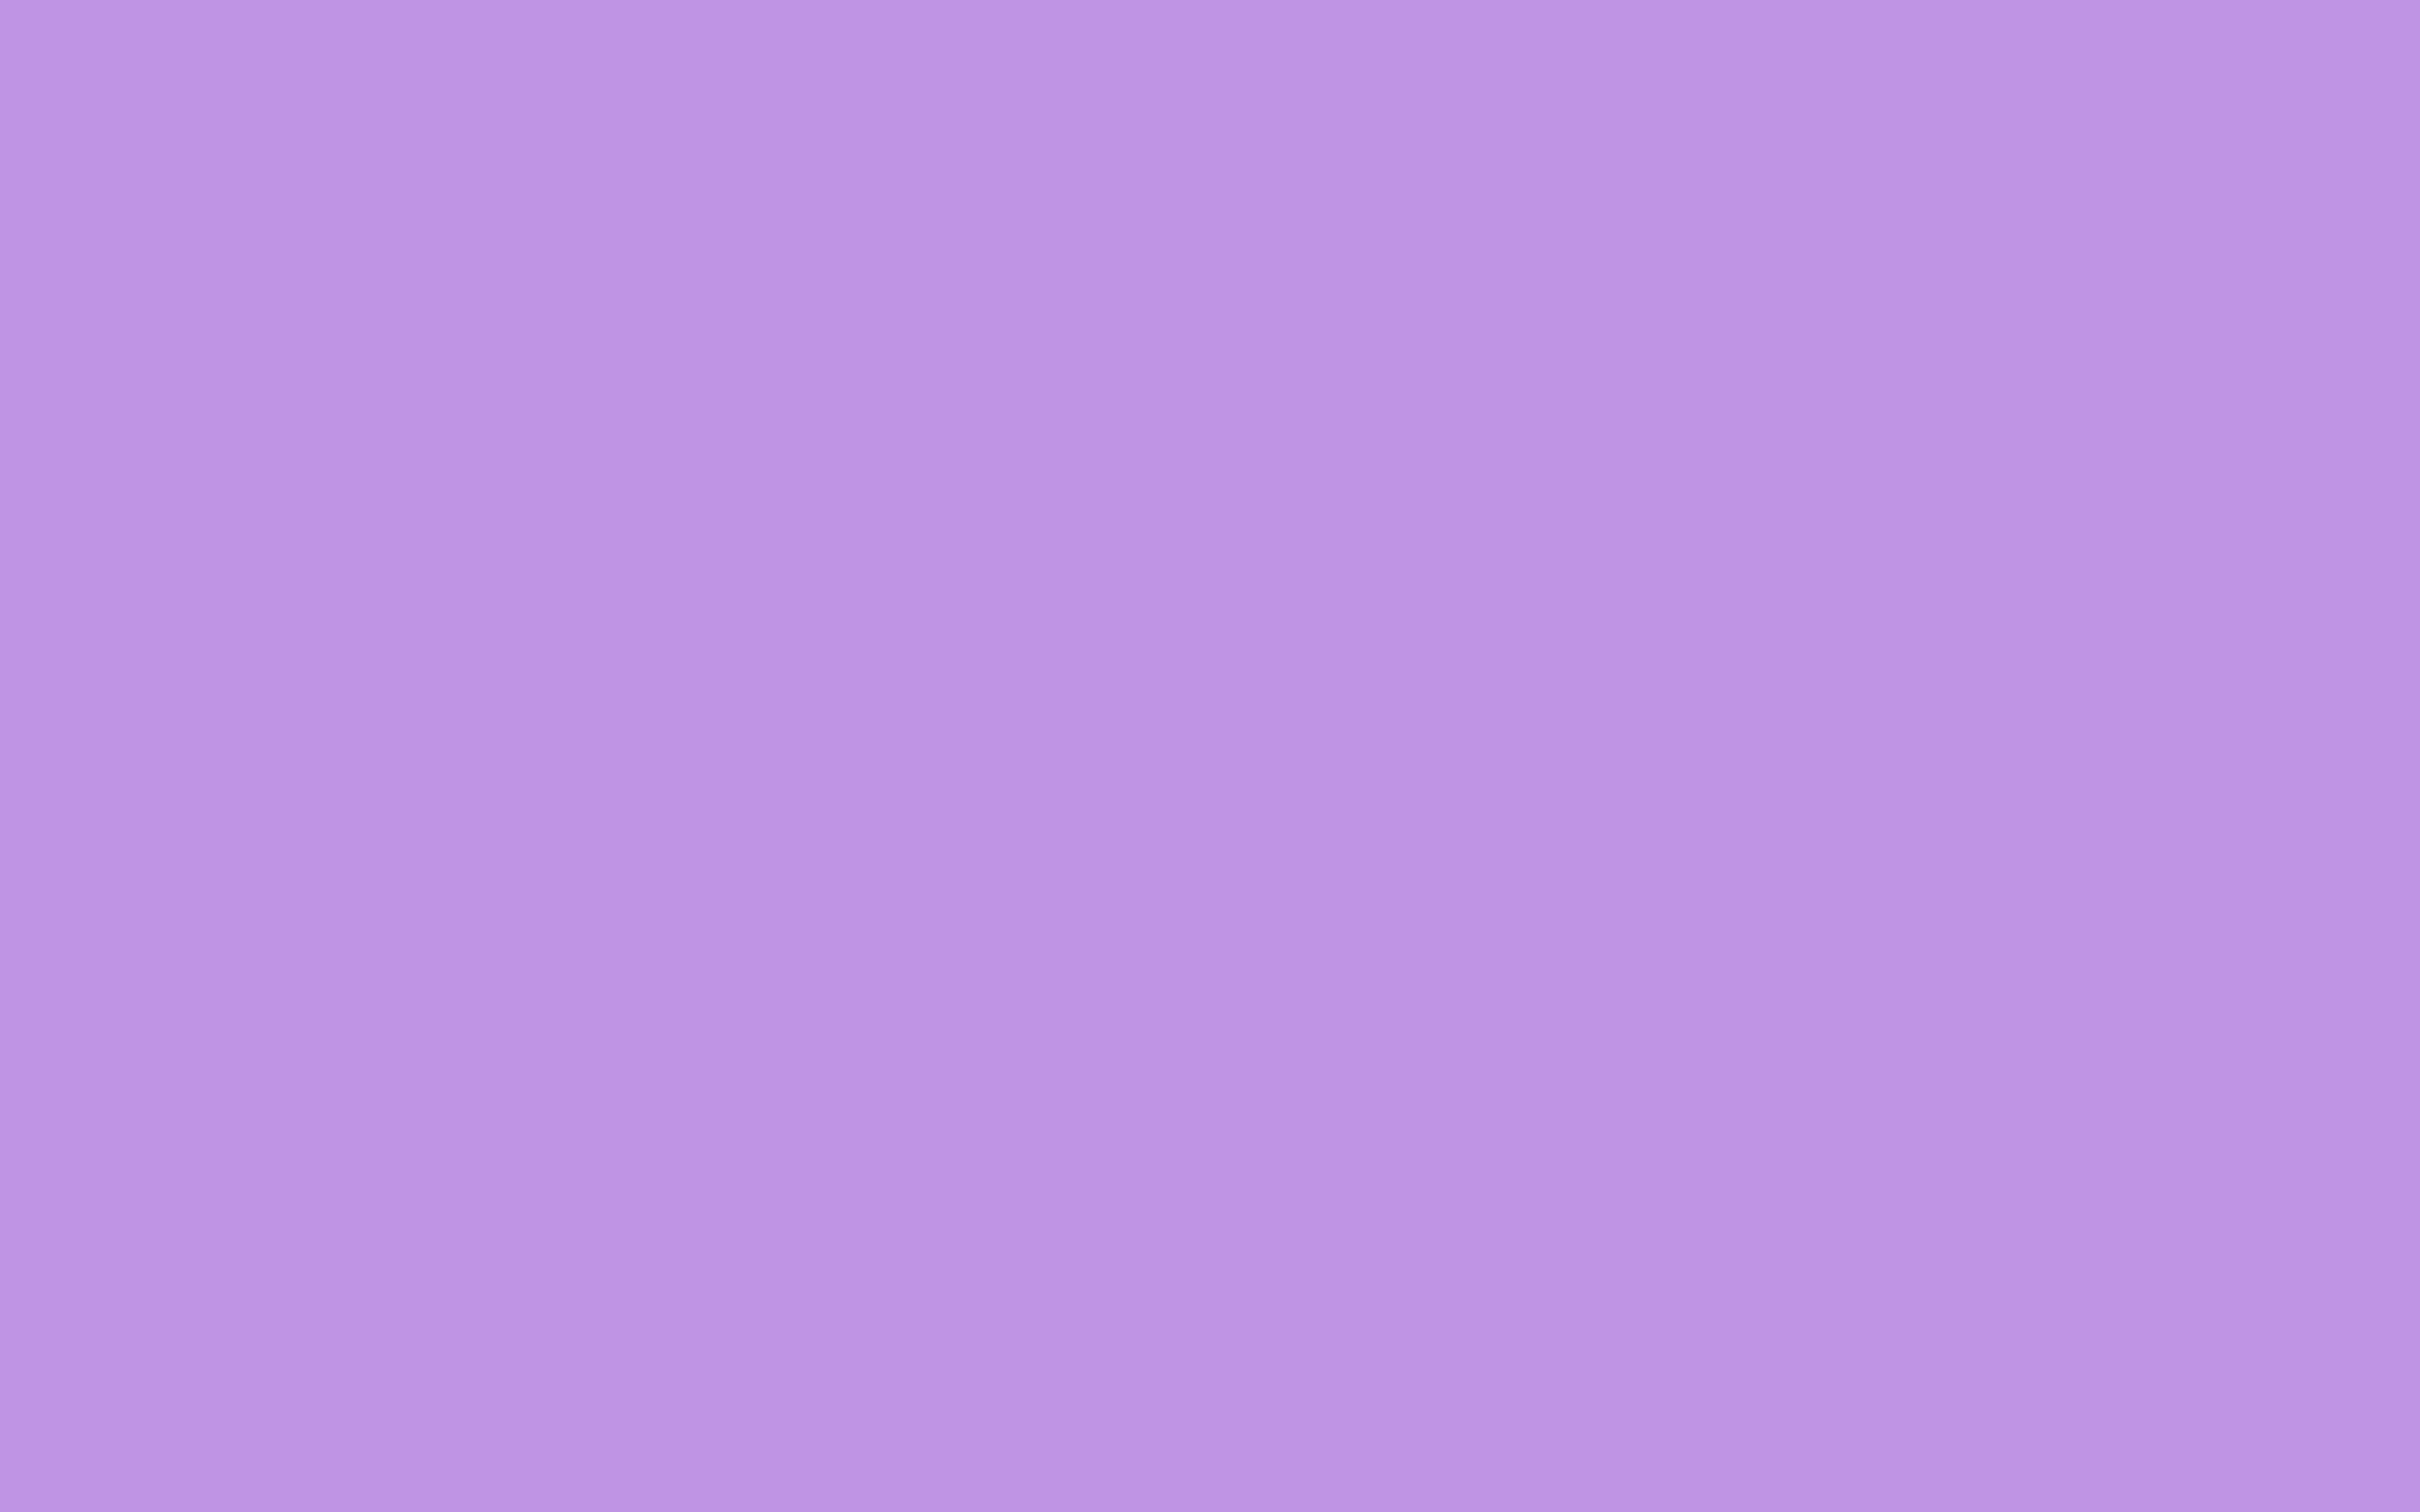 2560x1600 resolution Bright Lavender solid color background view 2560x1600